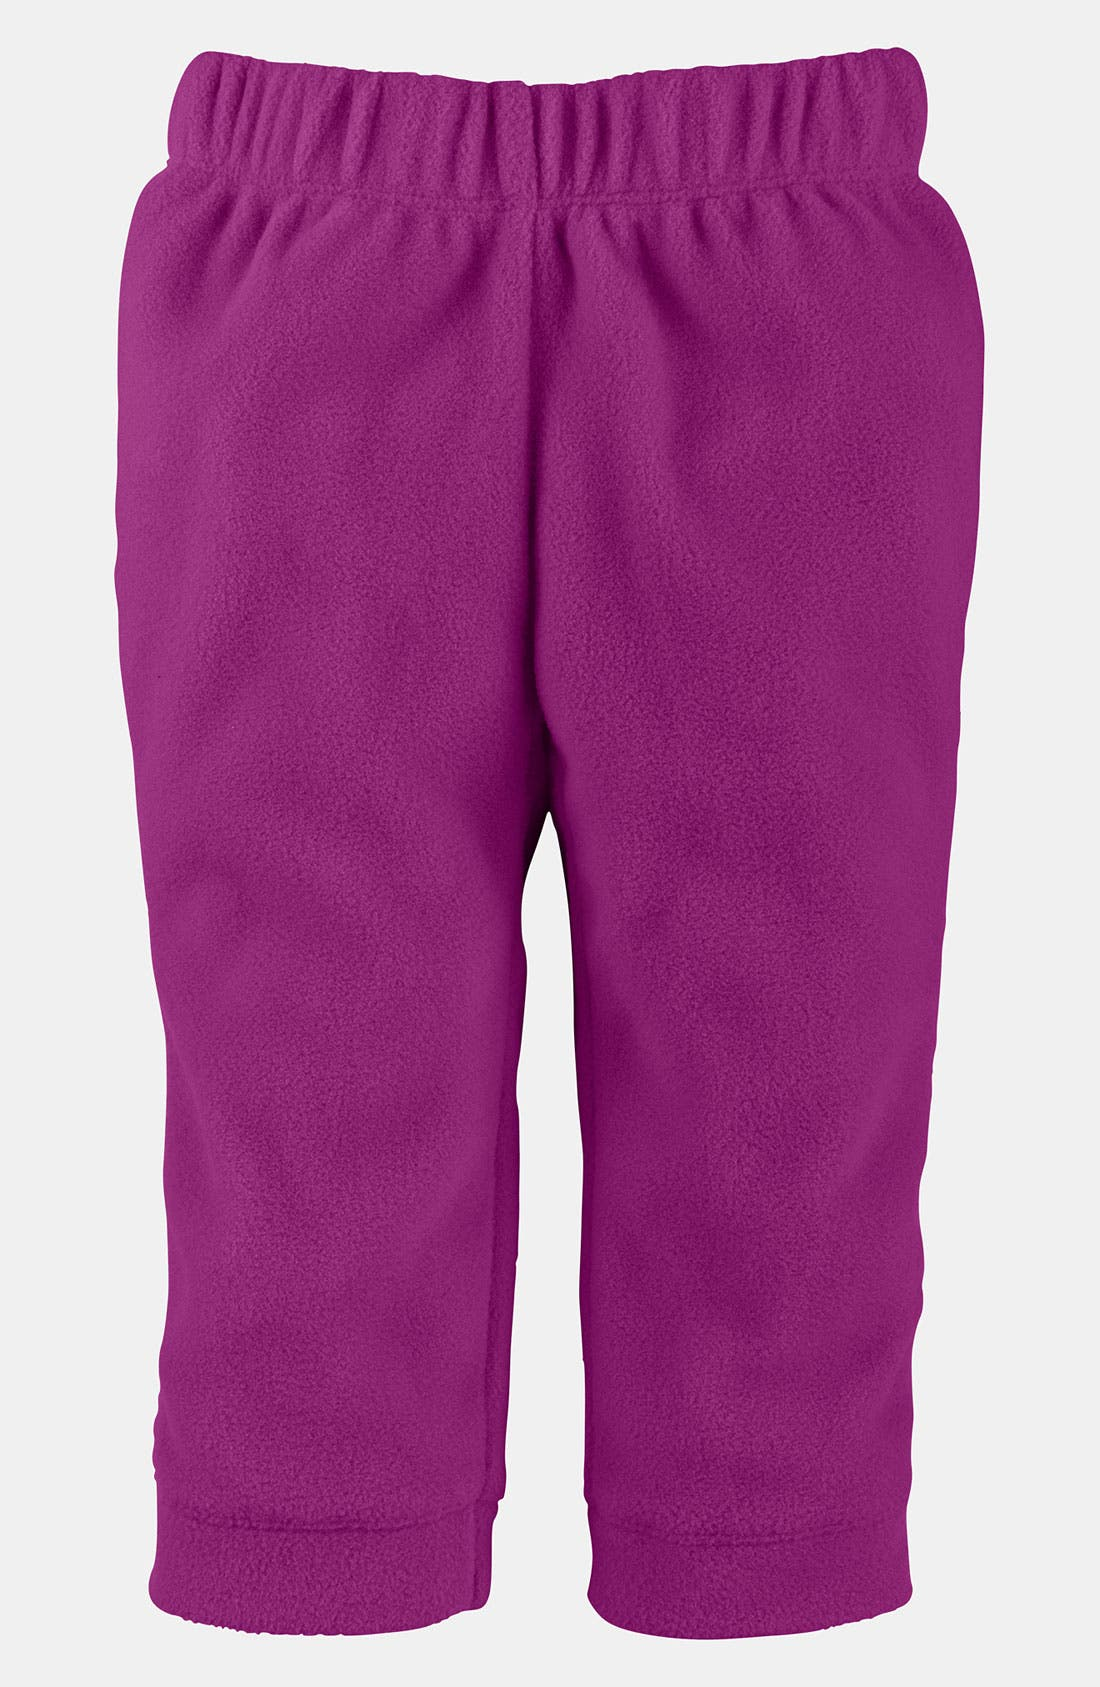 Alternate Image 1 Selected - The North Face 'Glacier' Pants (Baby)